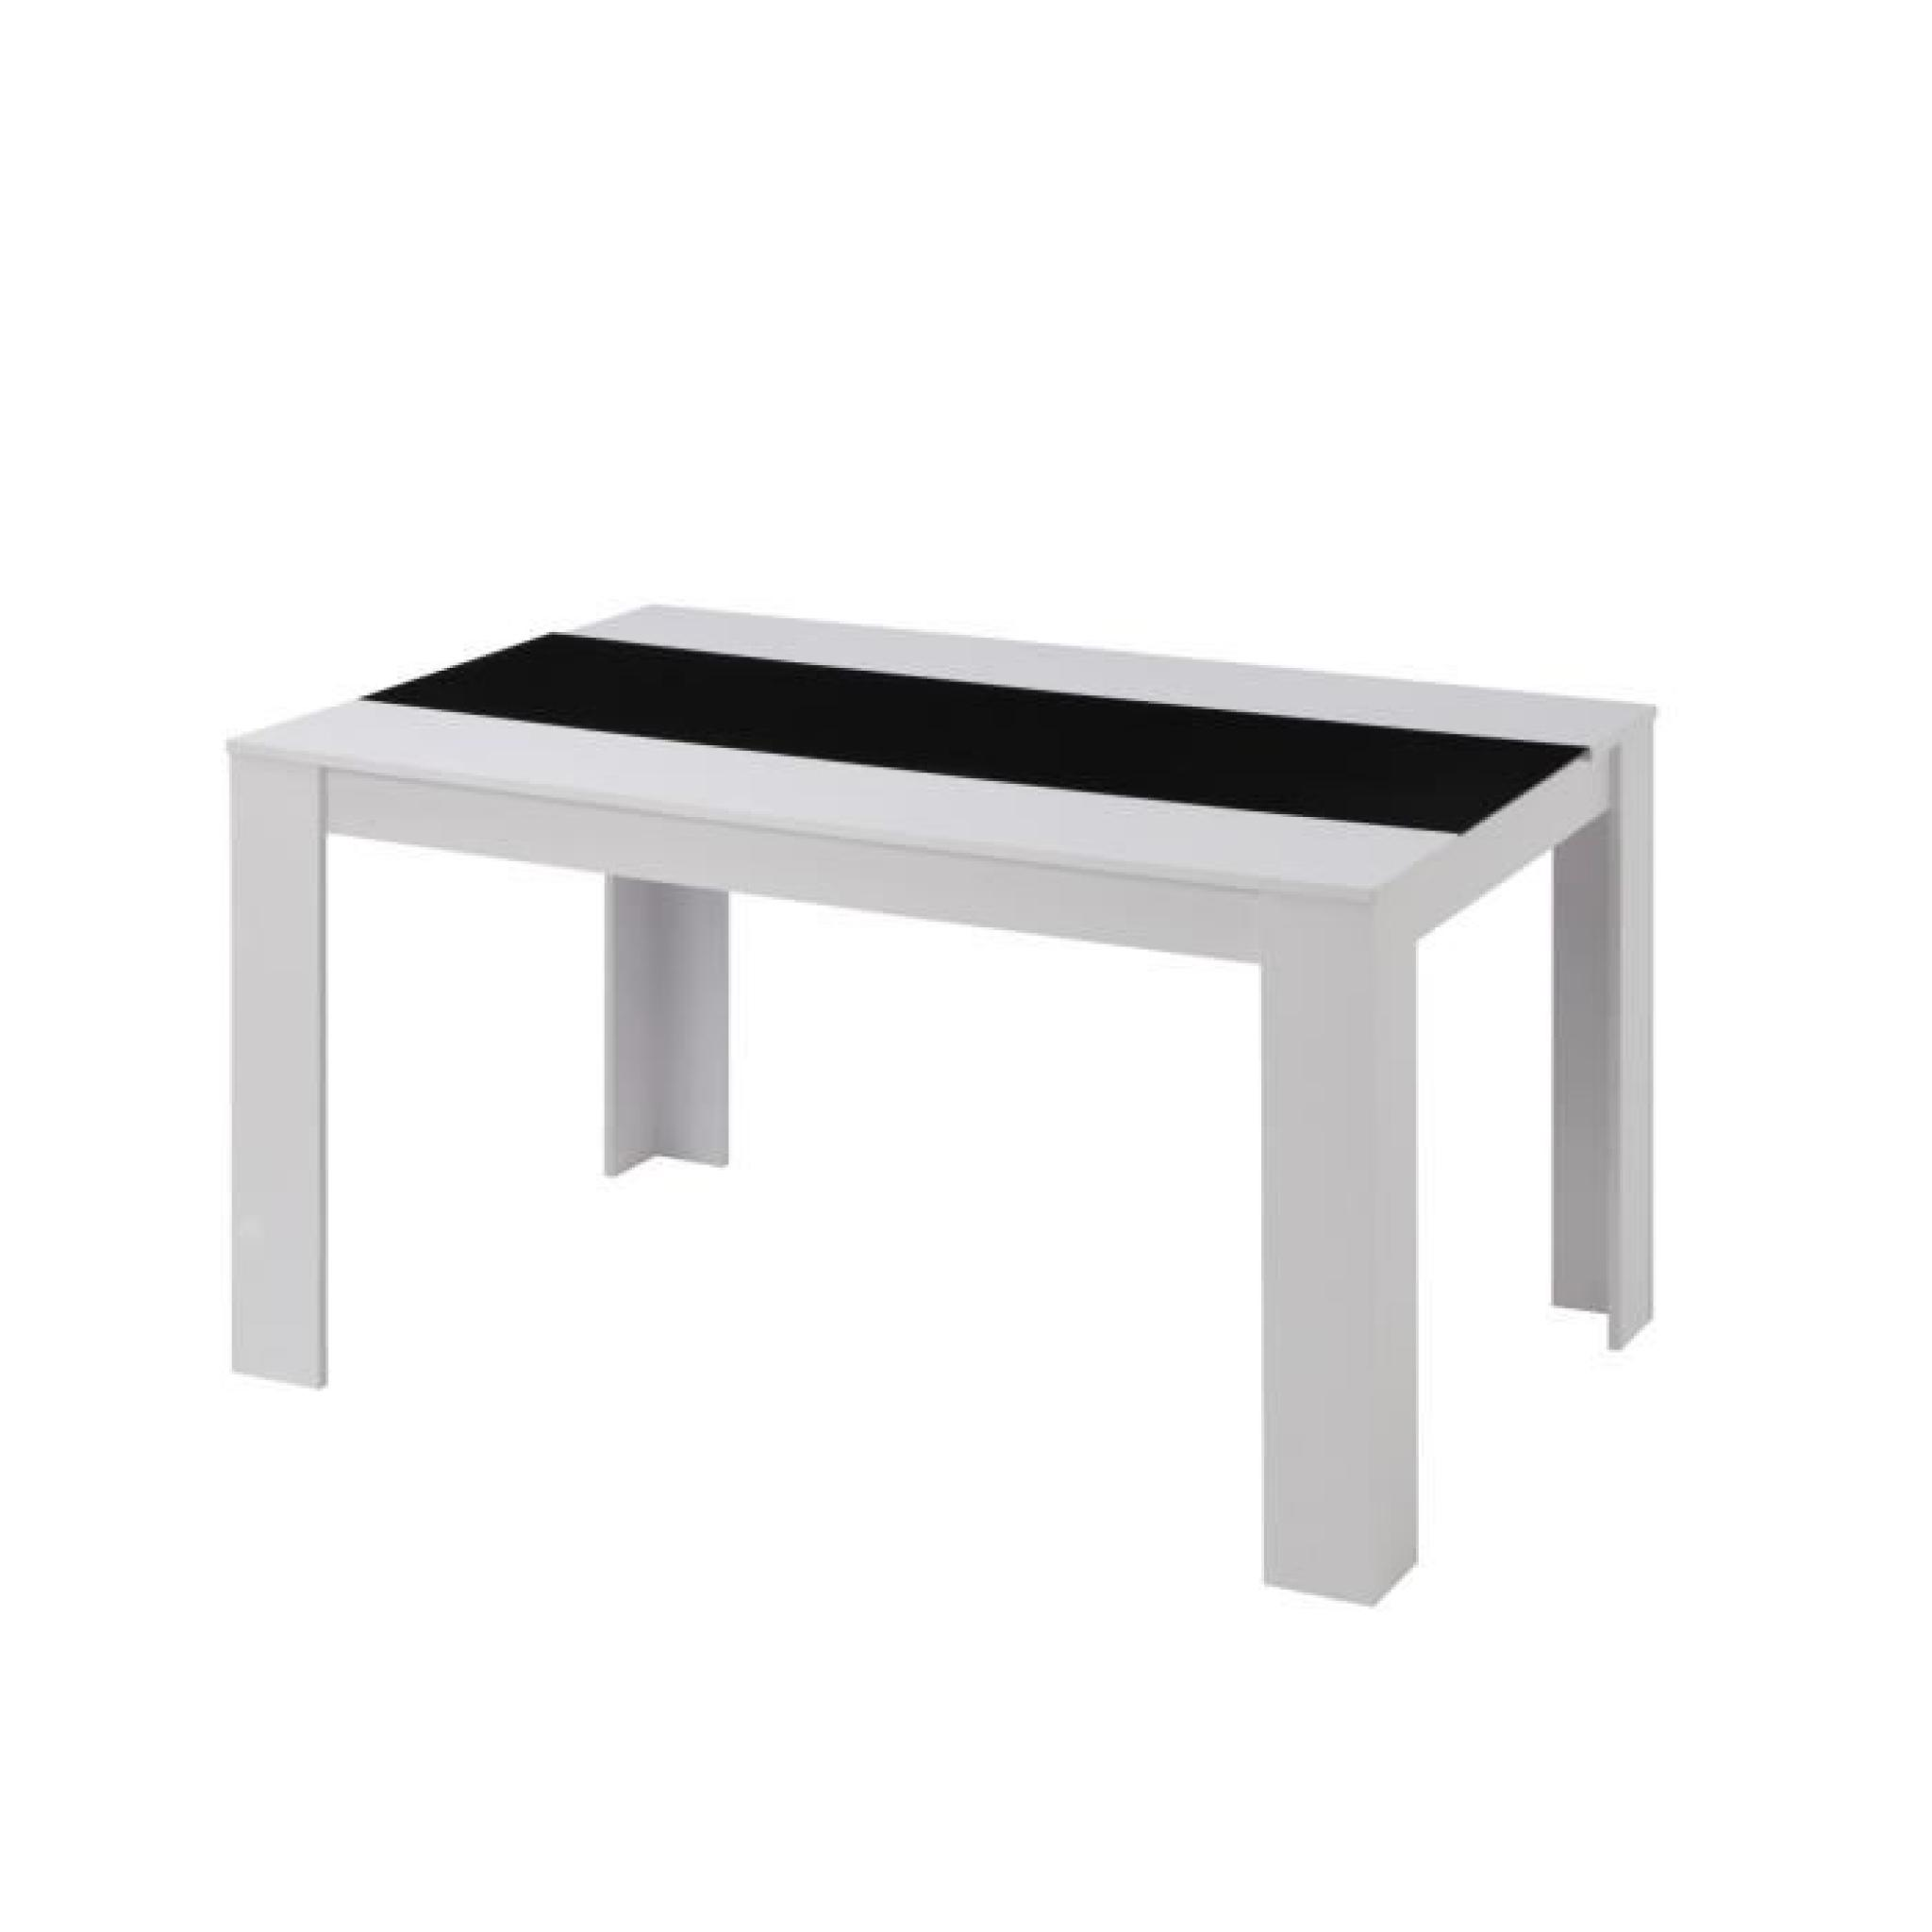 Damia table manger 140x90cm noir et blanc achat vente for Ensemble buffet table manger